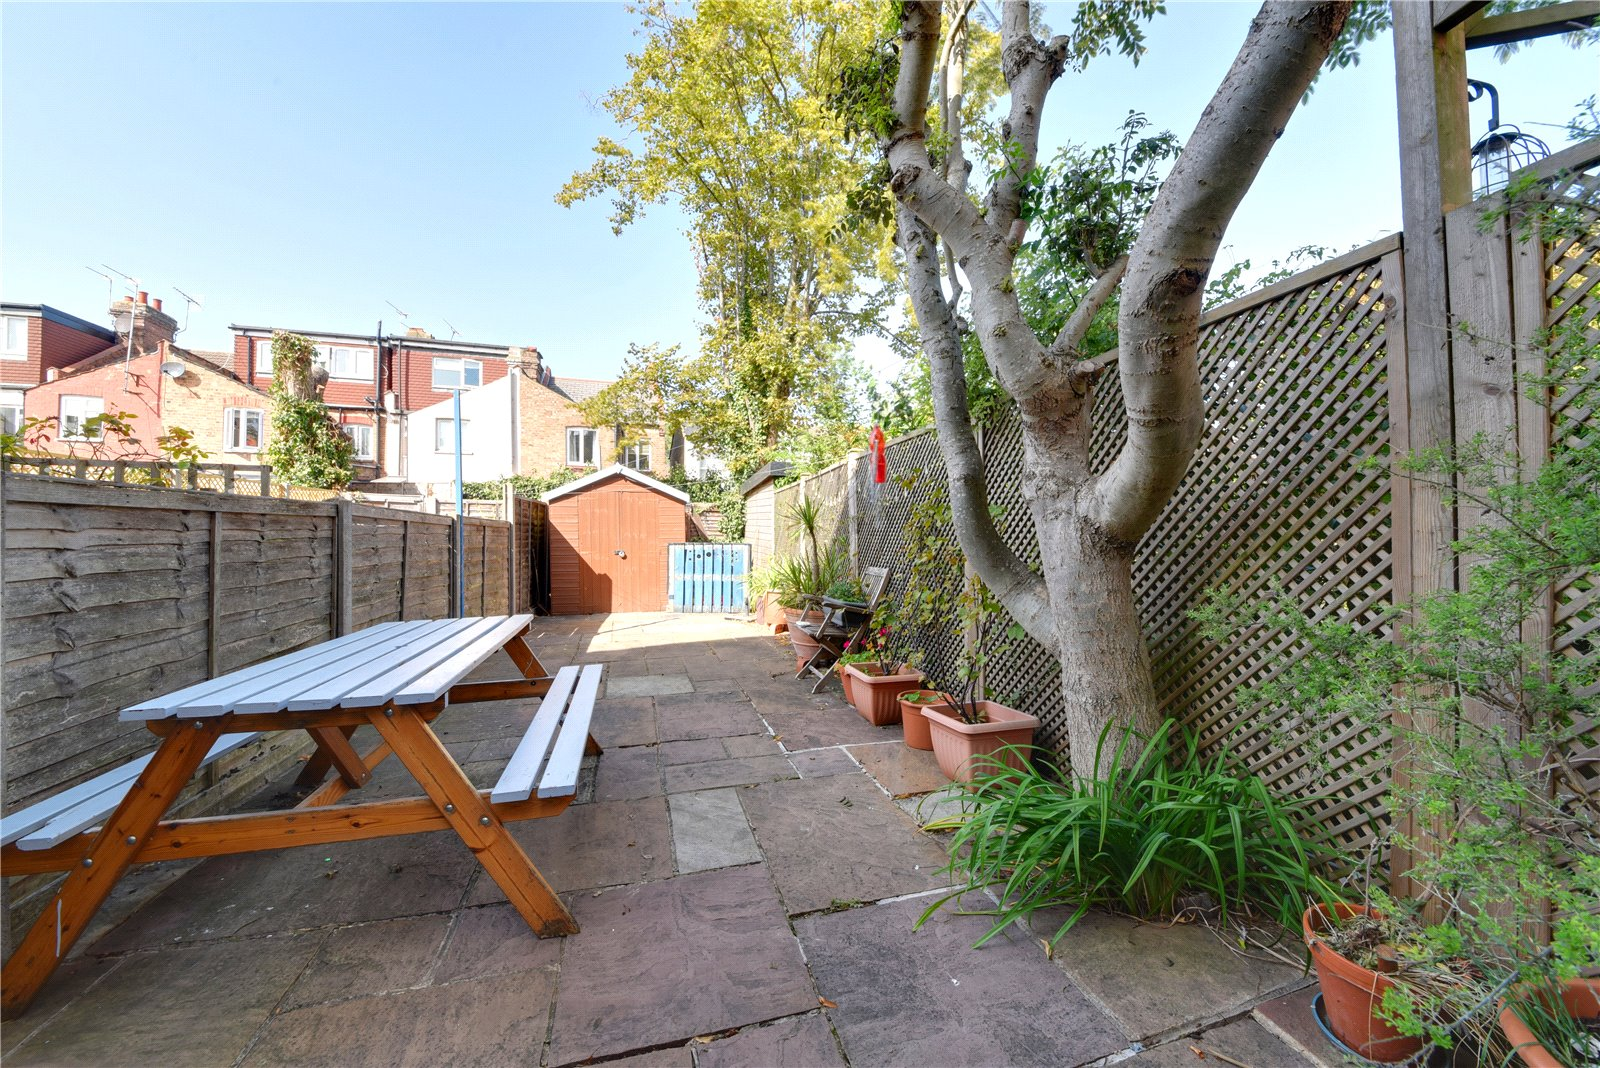 2 bed apartment for sale in East Finchley, N2 0SX 4